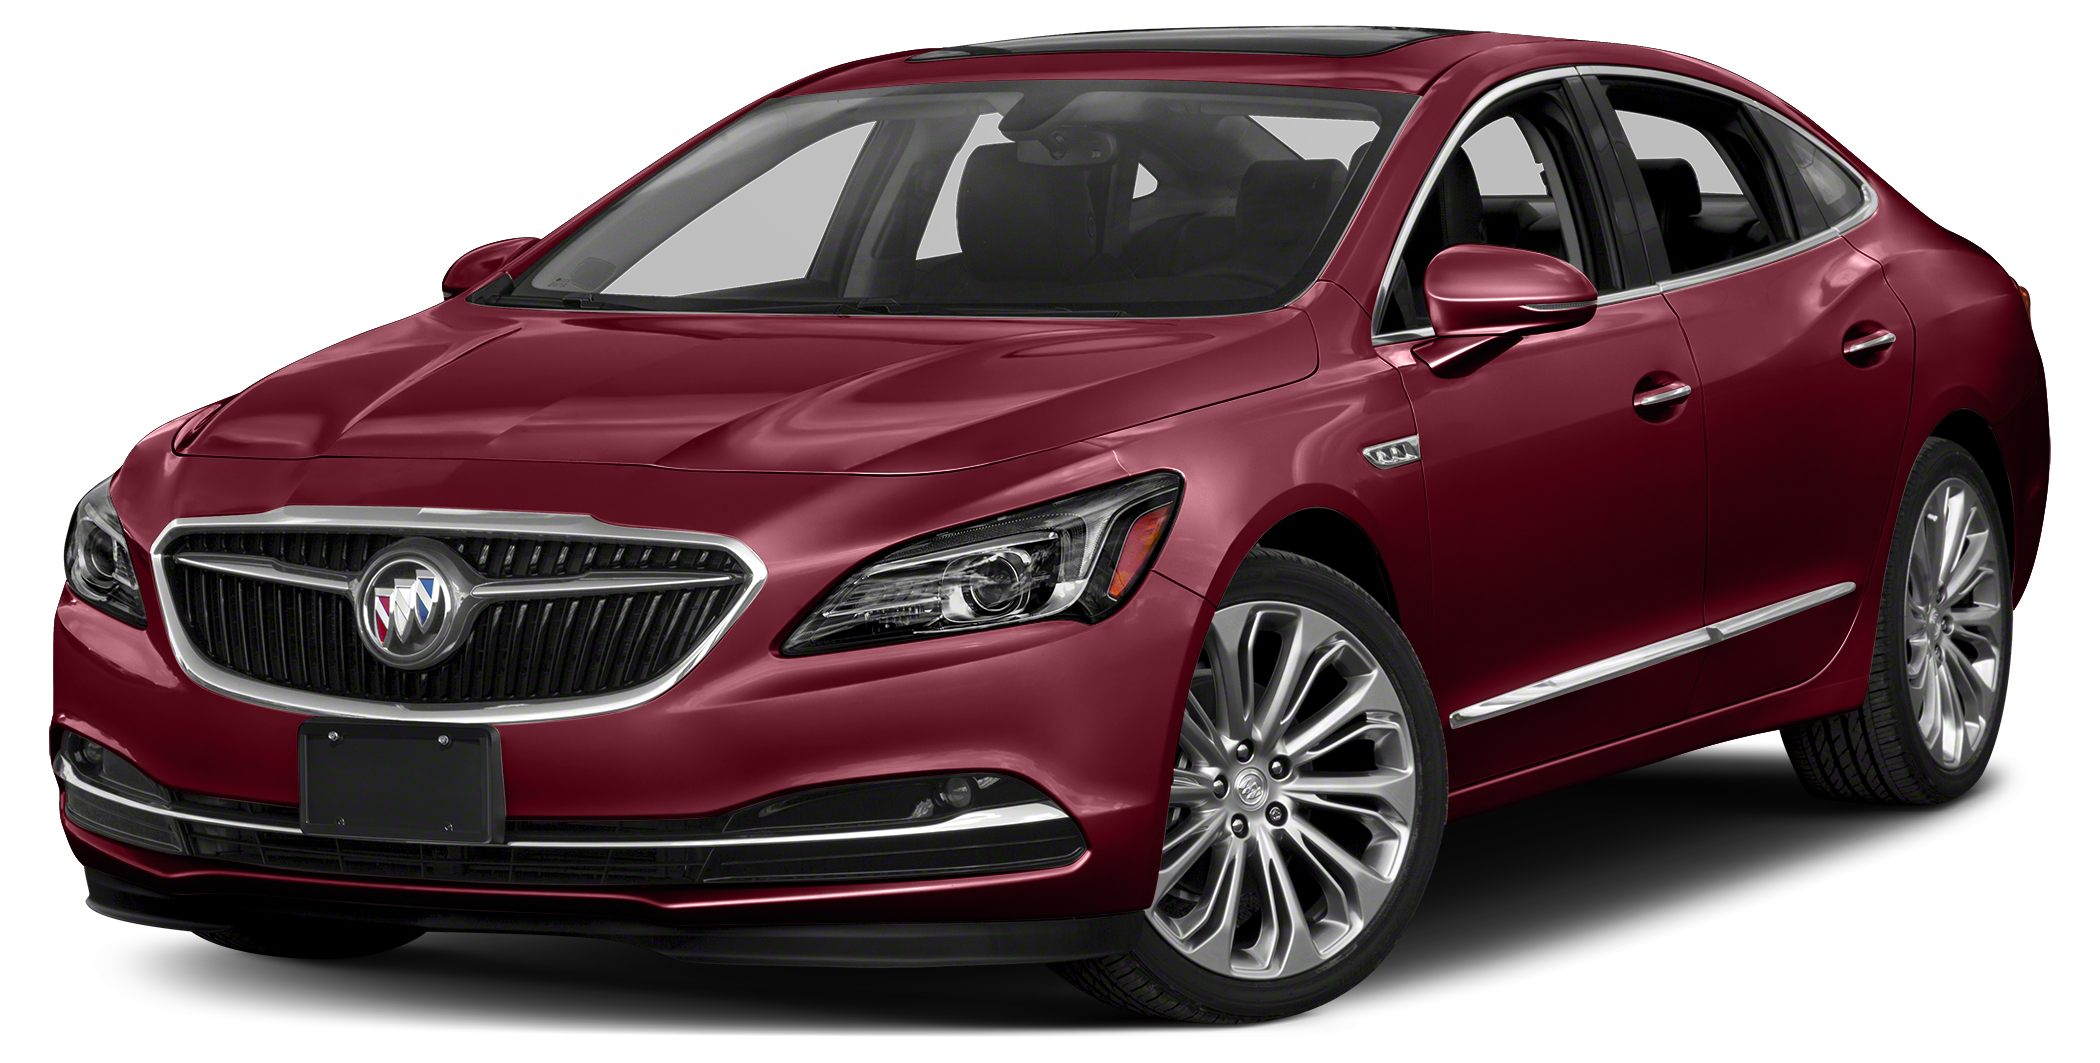 2017 Buick LaCrosse Preferred Buckle up for the ride of a lifetime This 2017 Buick LaCrosse Prefe